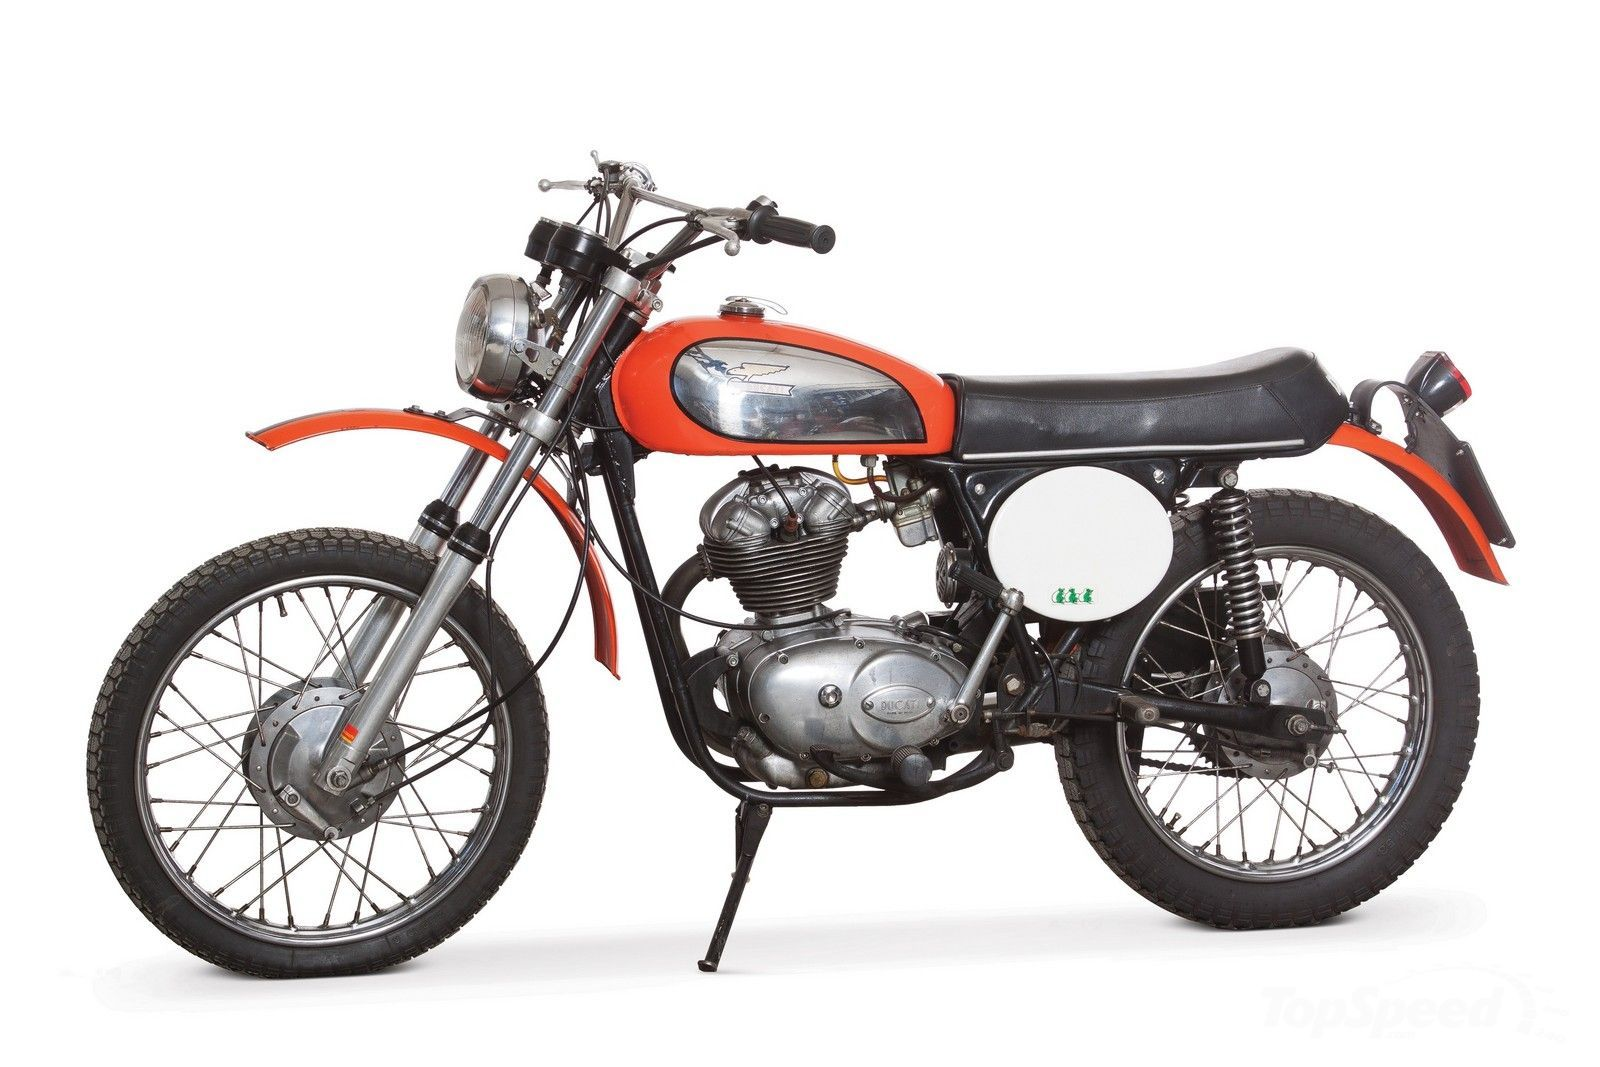 1959 Ducati 125 T: pics, specs and information